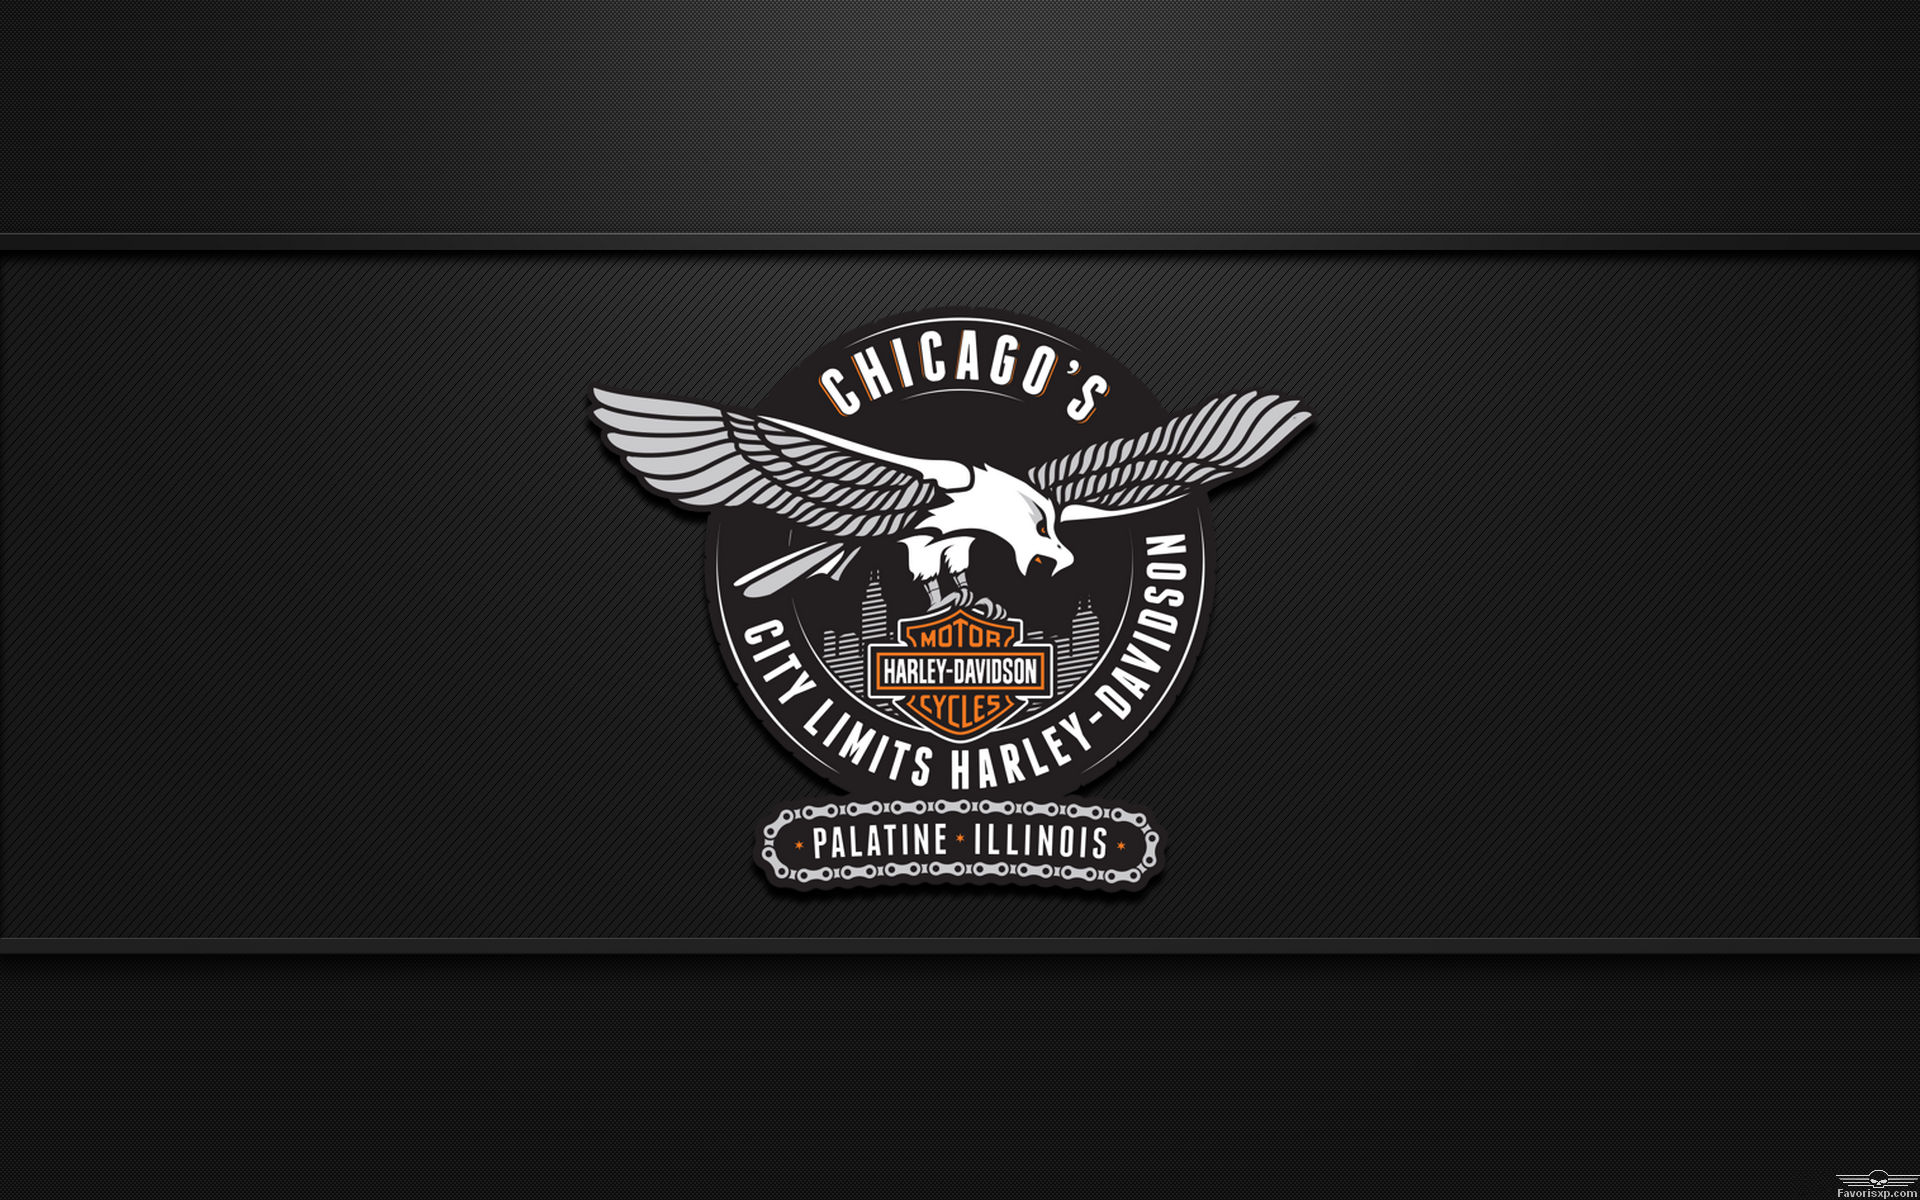 Chicago City Limits Harley